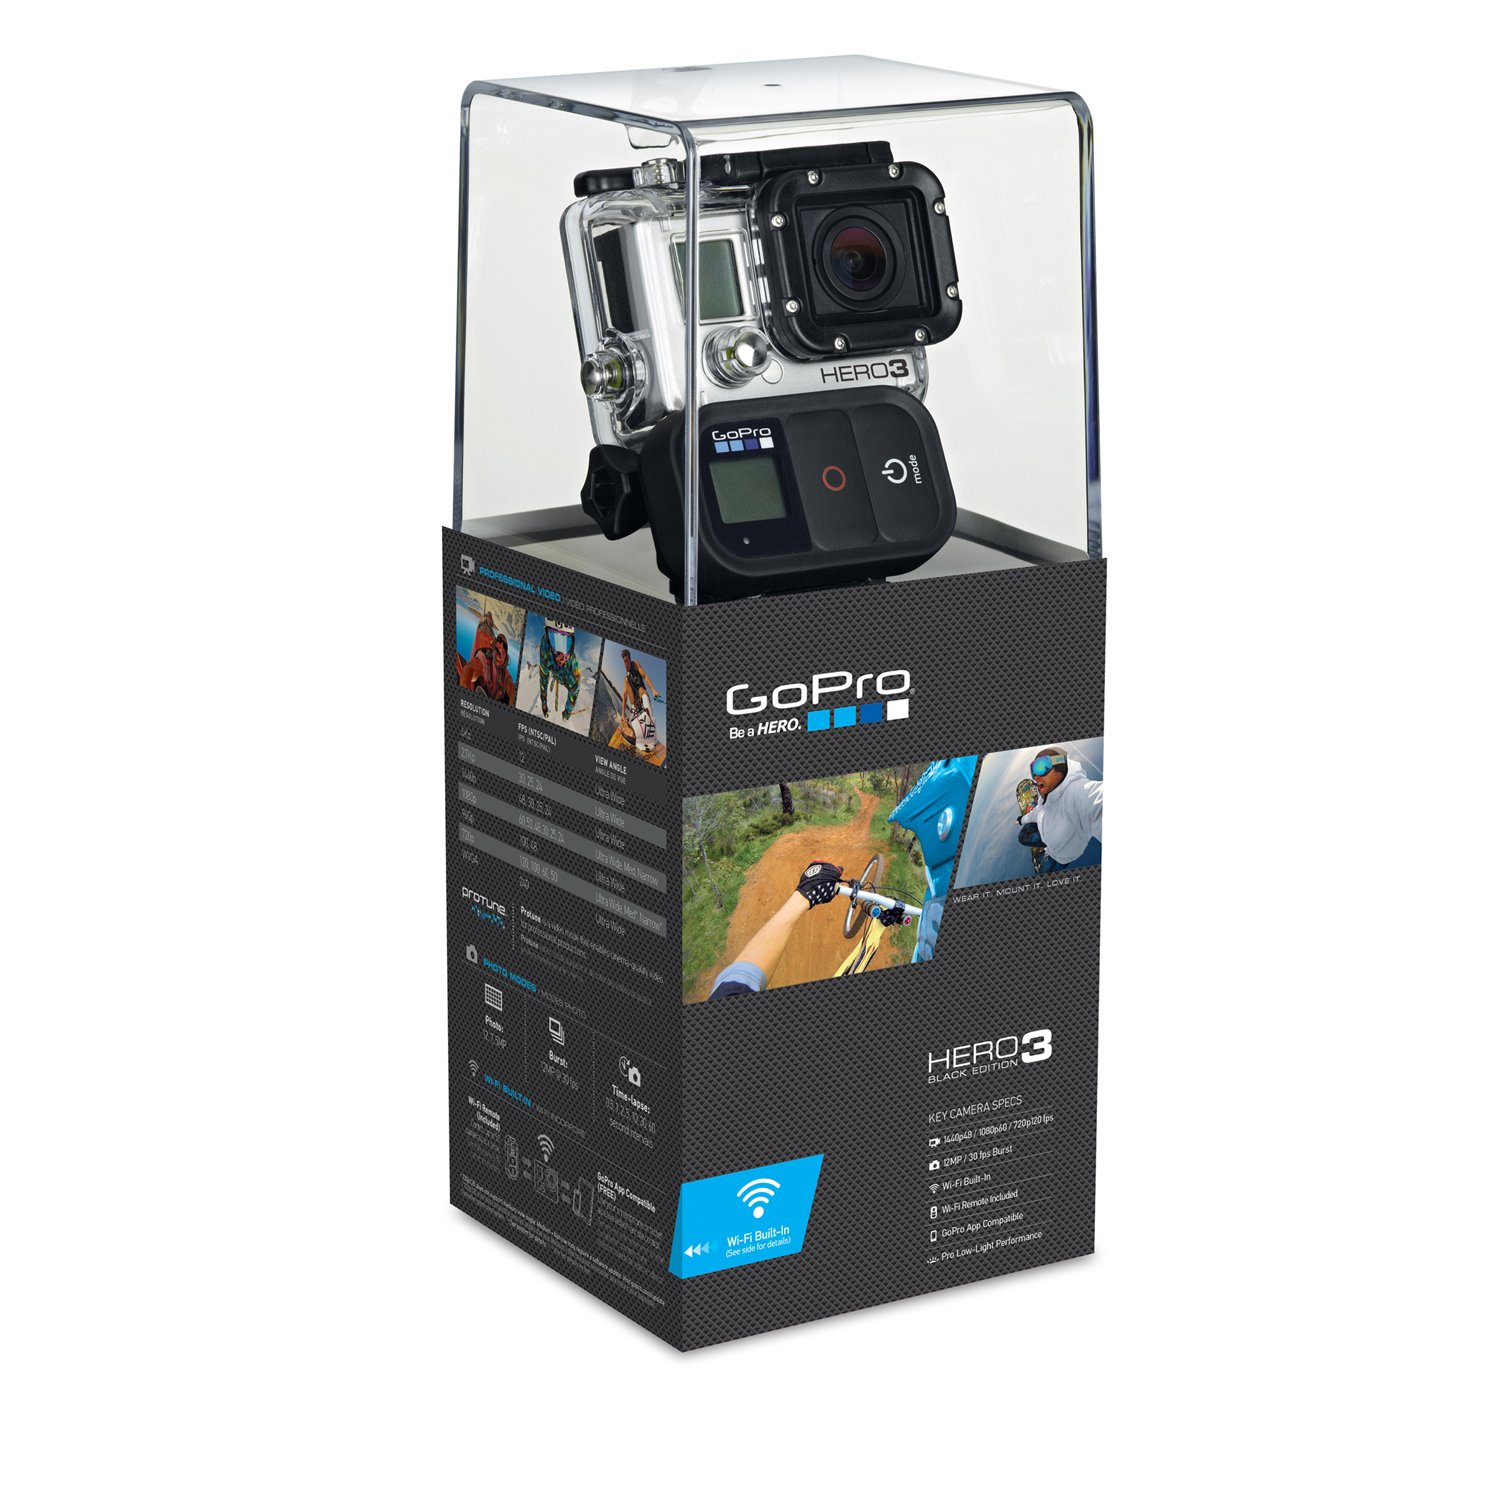 GoPro HERO3 Black Edition - Videocámara de 12 MP (estabilizador de Imagen óptico, vídeo Full HD 1080p, Resistente al Agua, WiFi) Color Negro